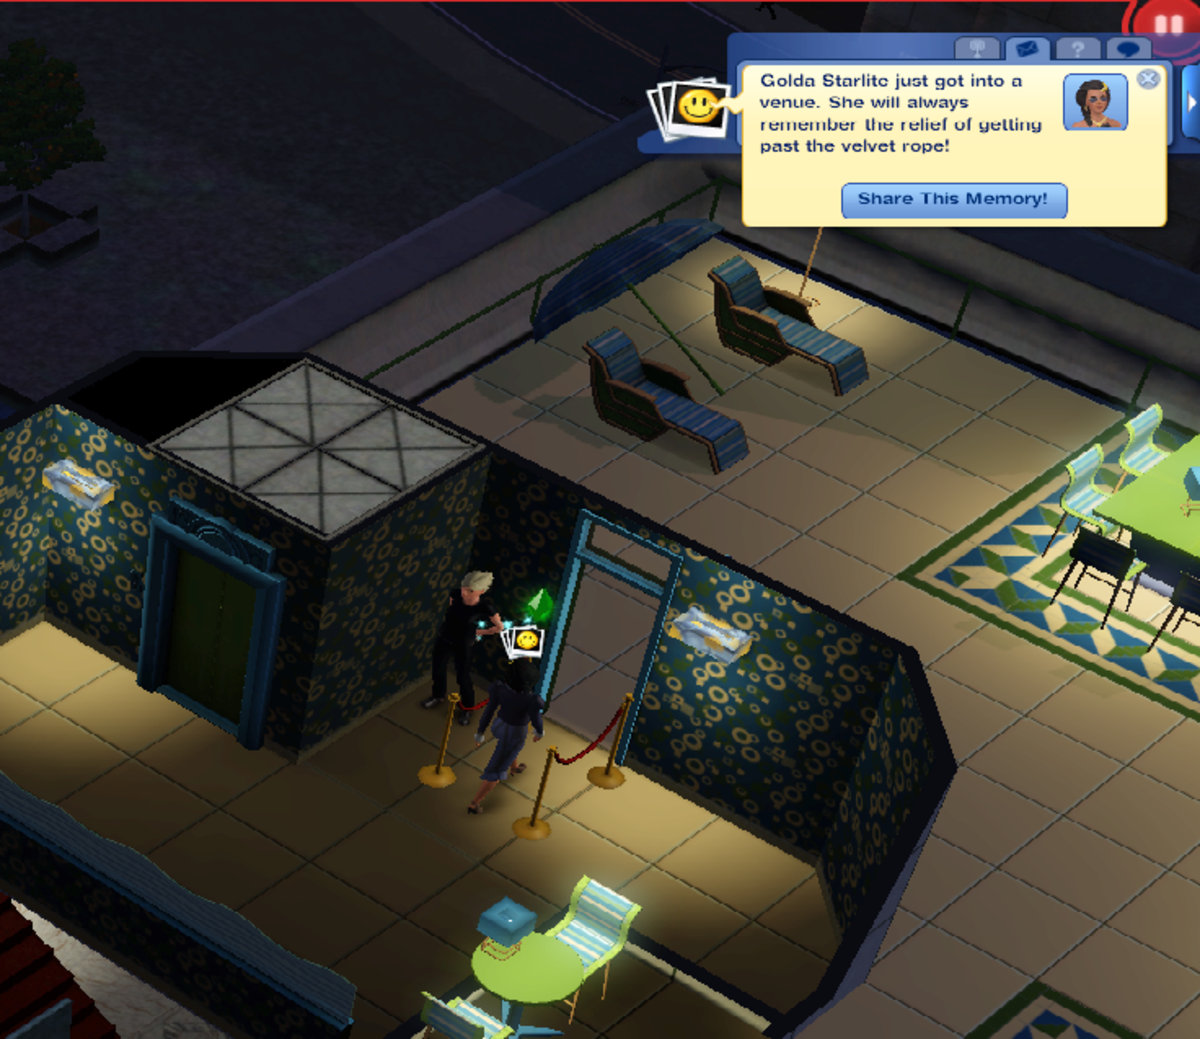 One of the joys of Sim celebrity is getting into a VIP venue.